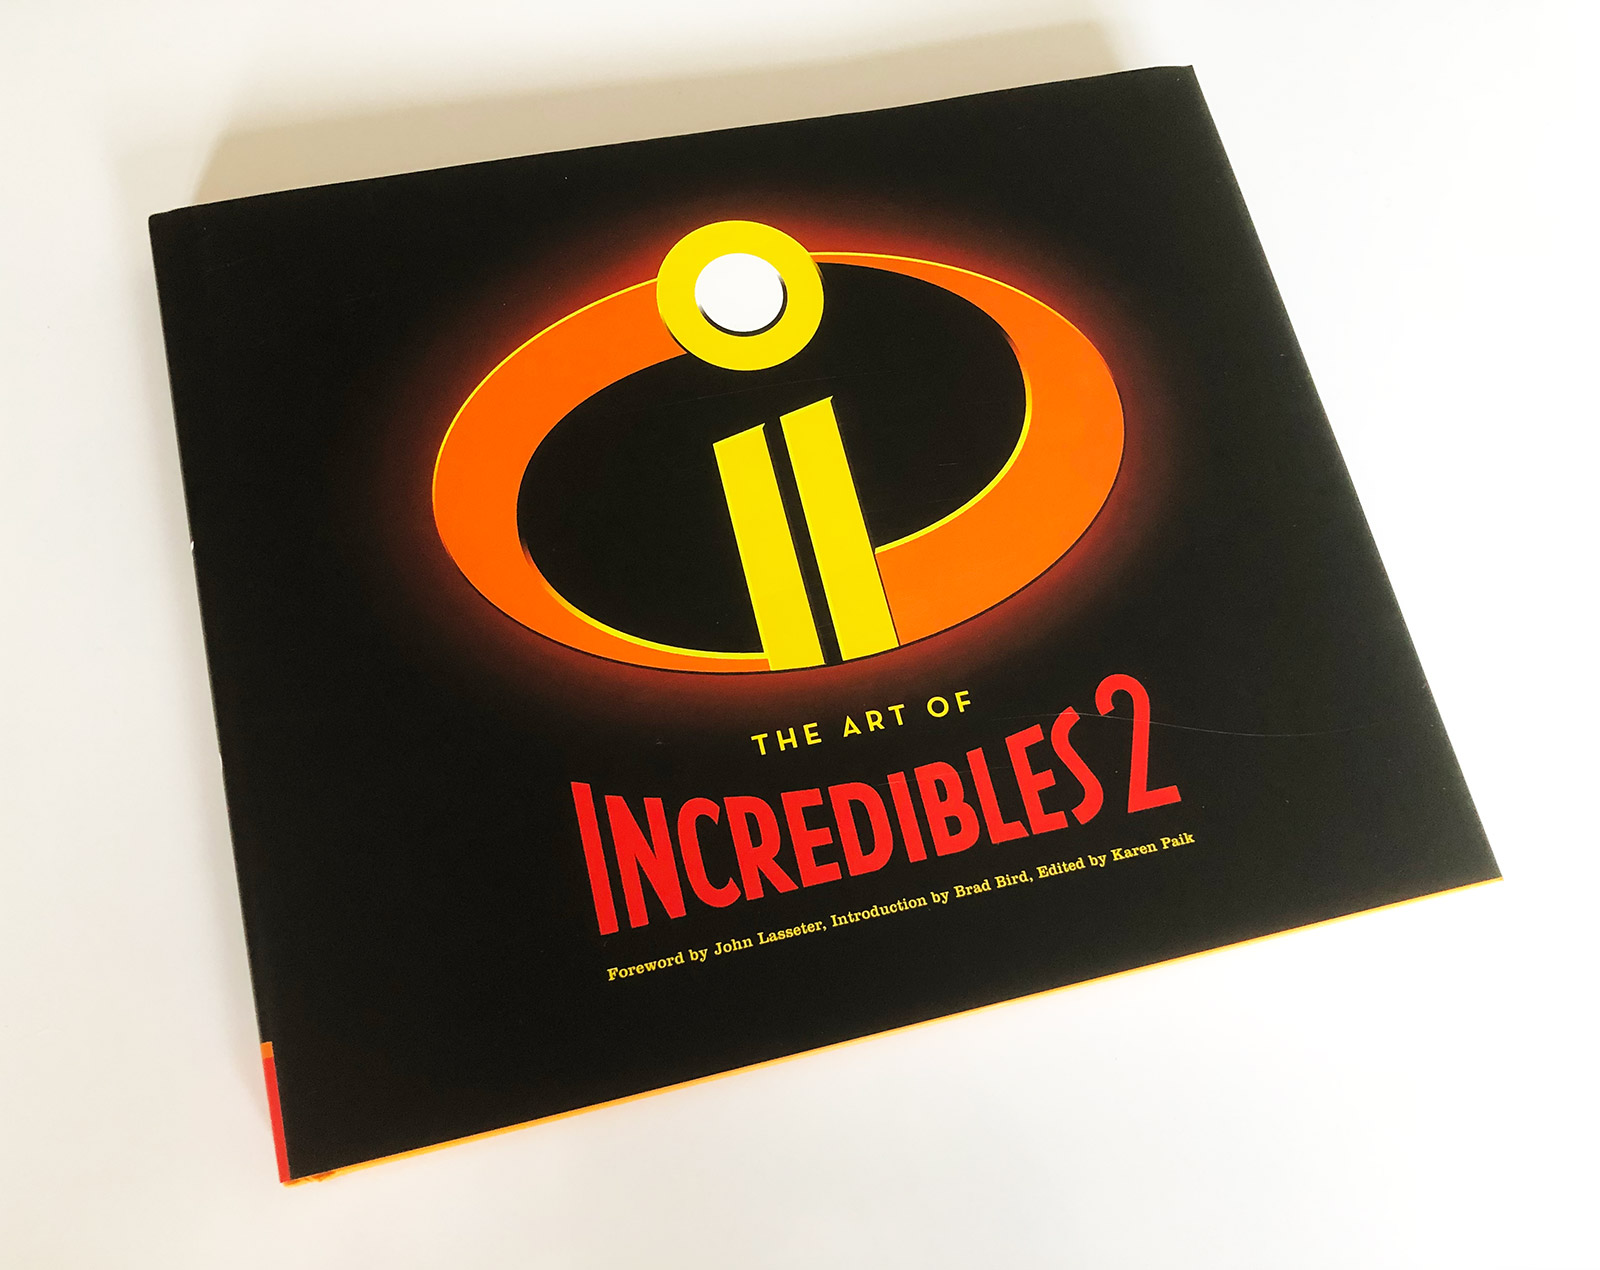 The Art of Incredibles 2 Book Review